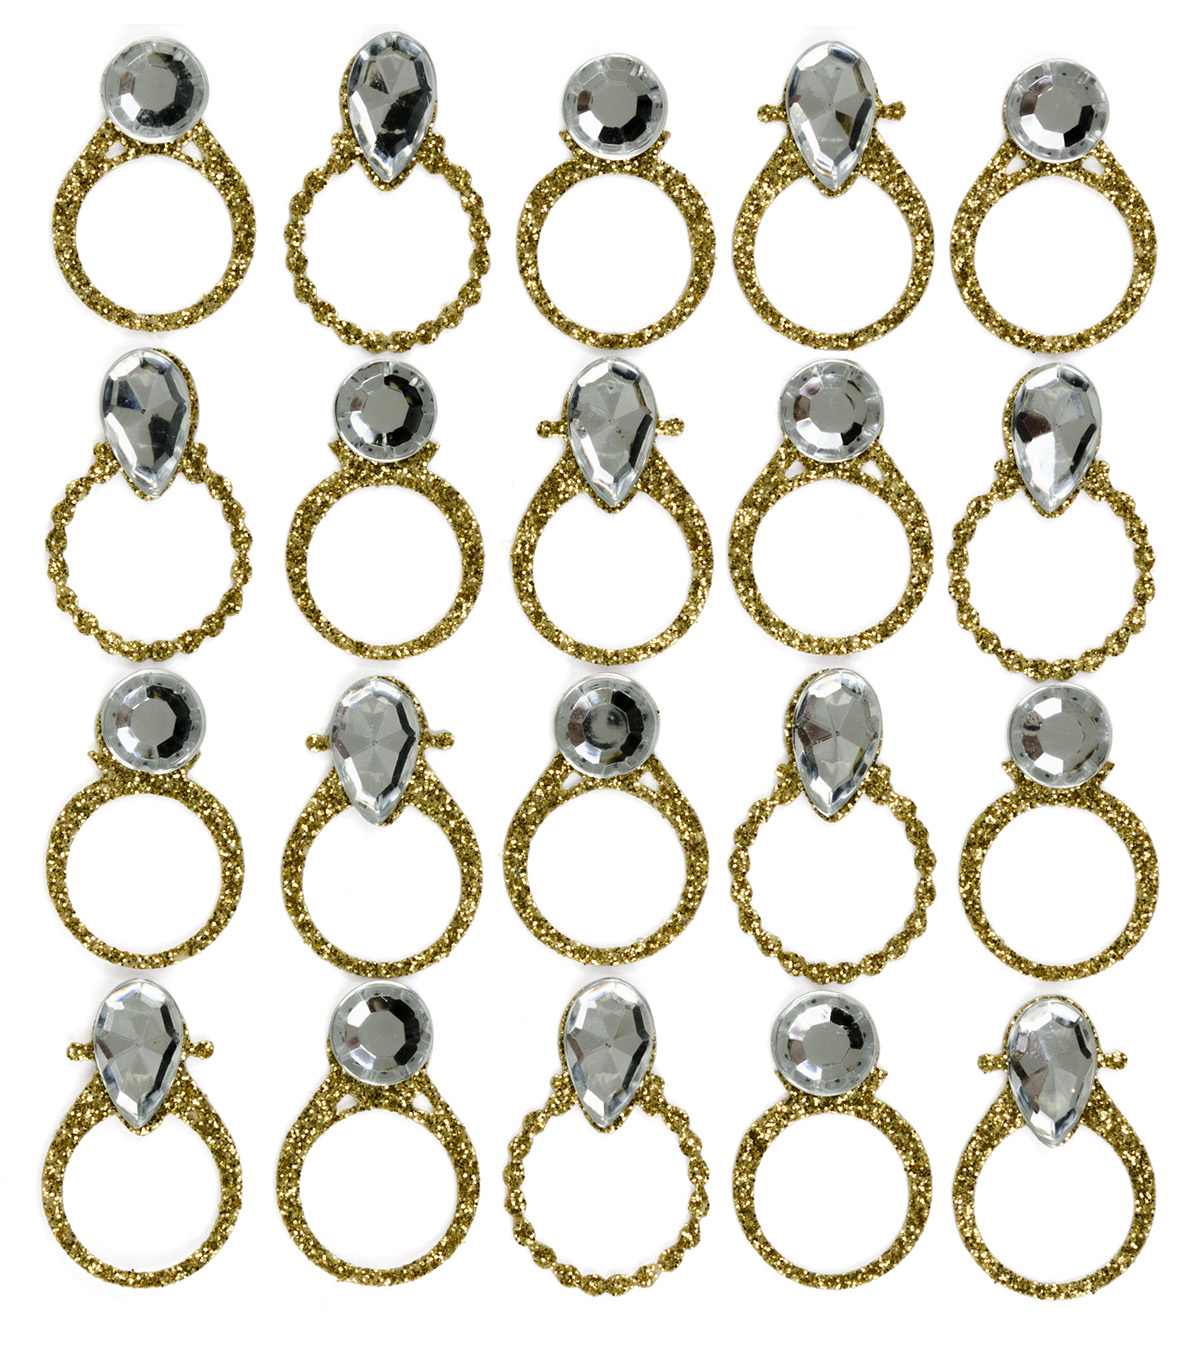 Jolee\u0027s Boutique® 4\u0027\u0027 x 4.25\u0027\u0027 Repeat Stickers-Gold Wedding Rings